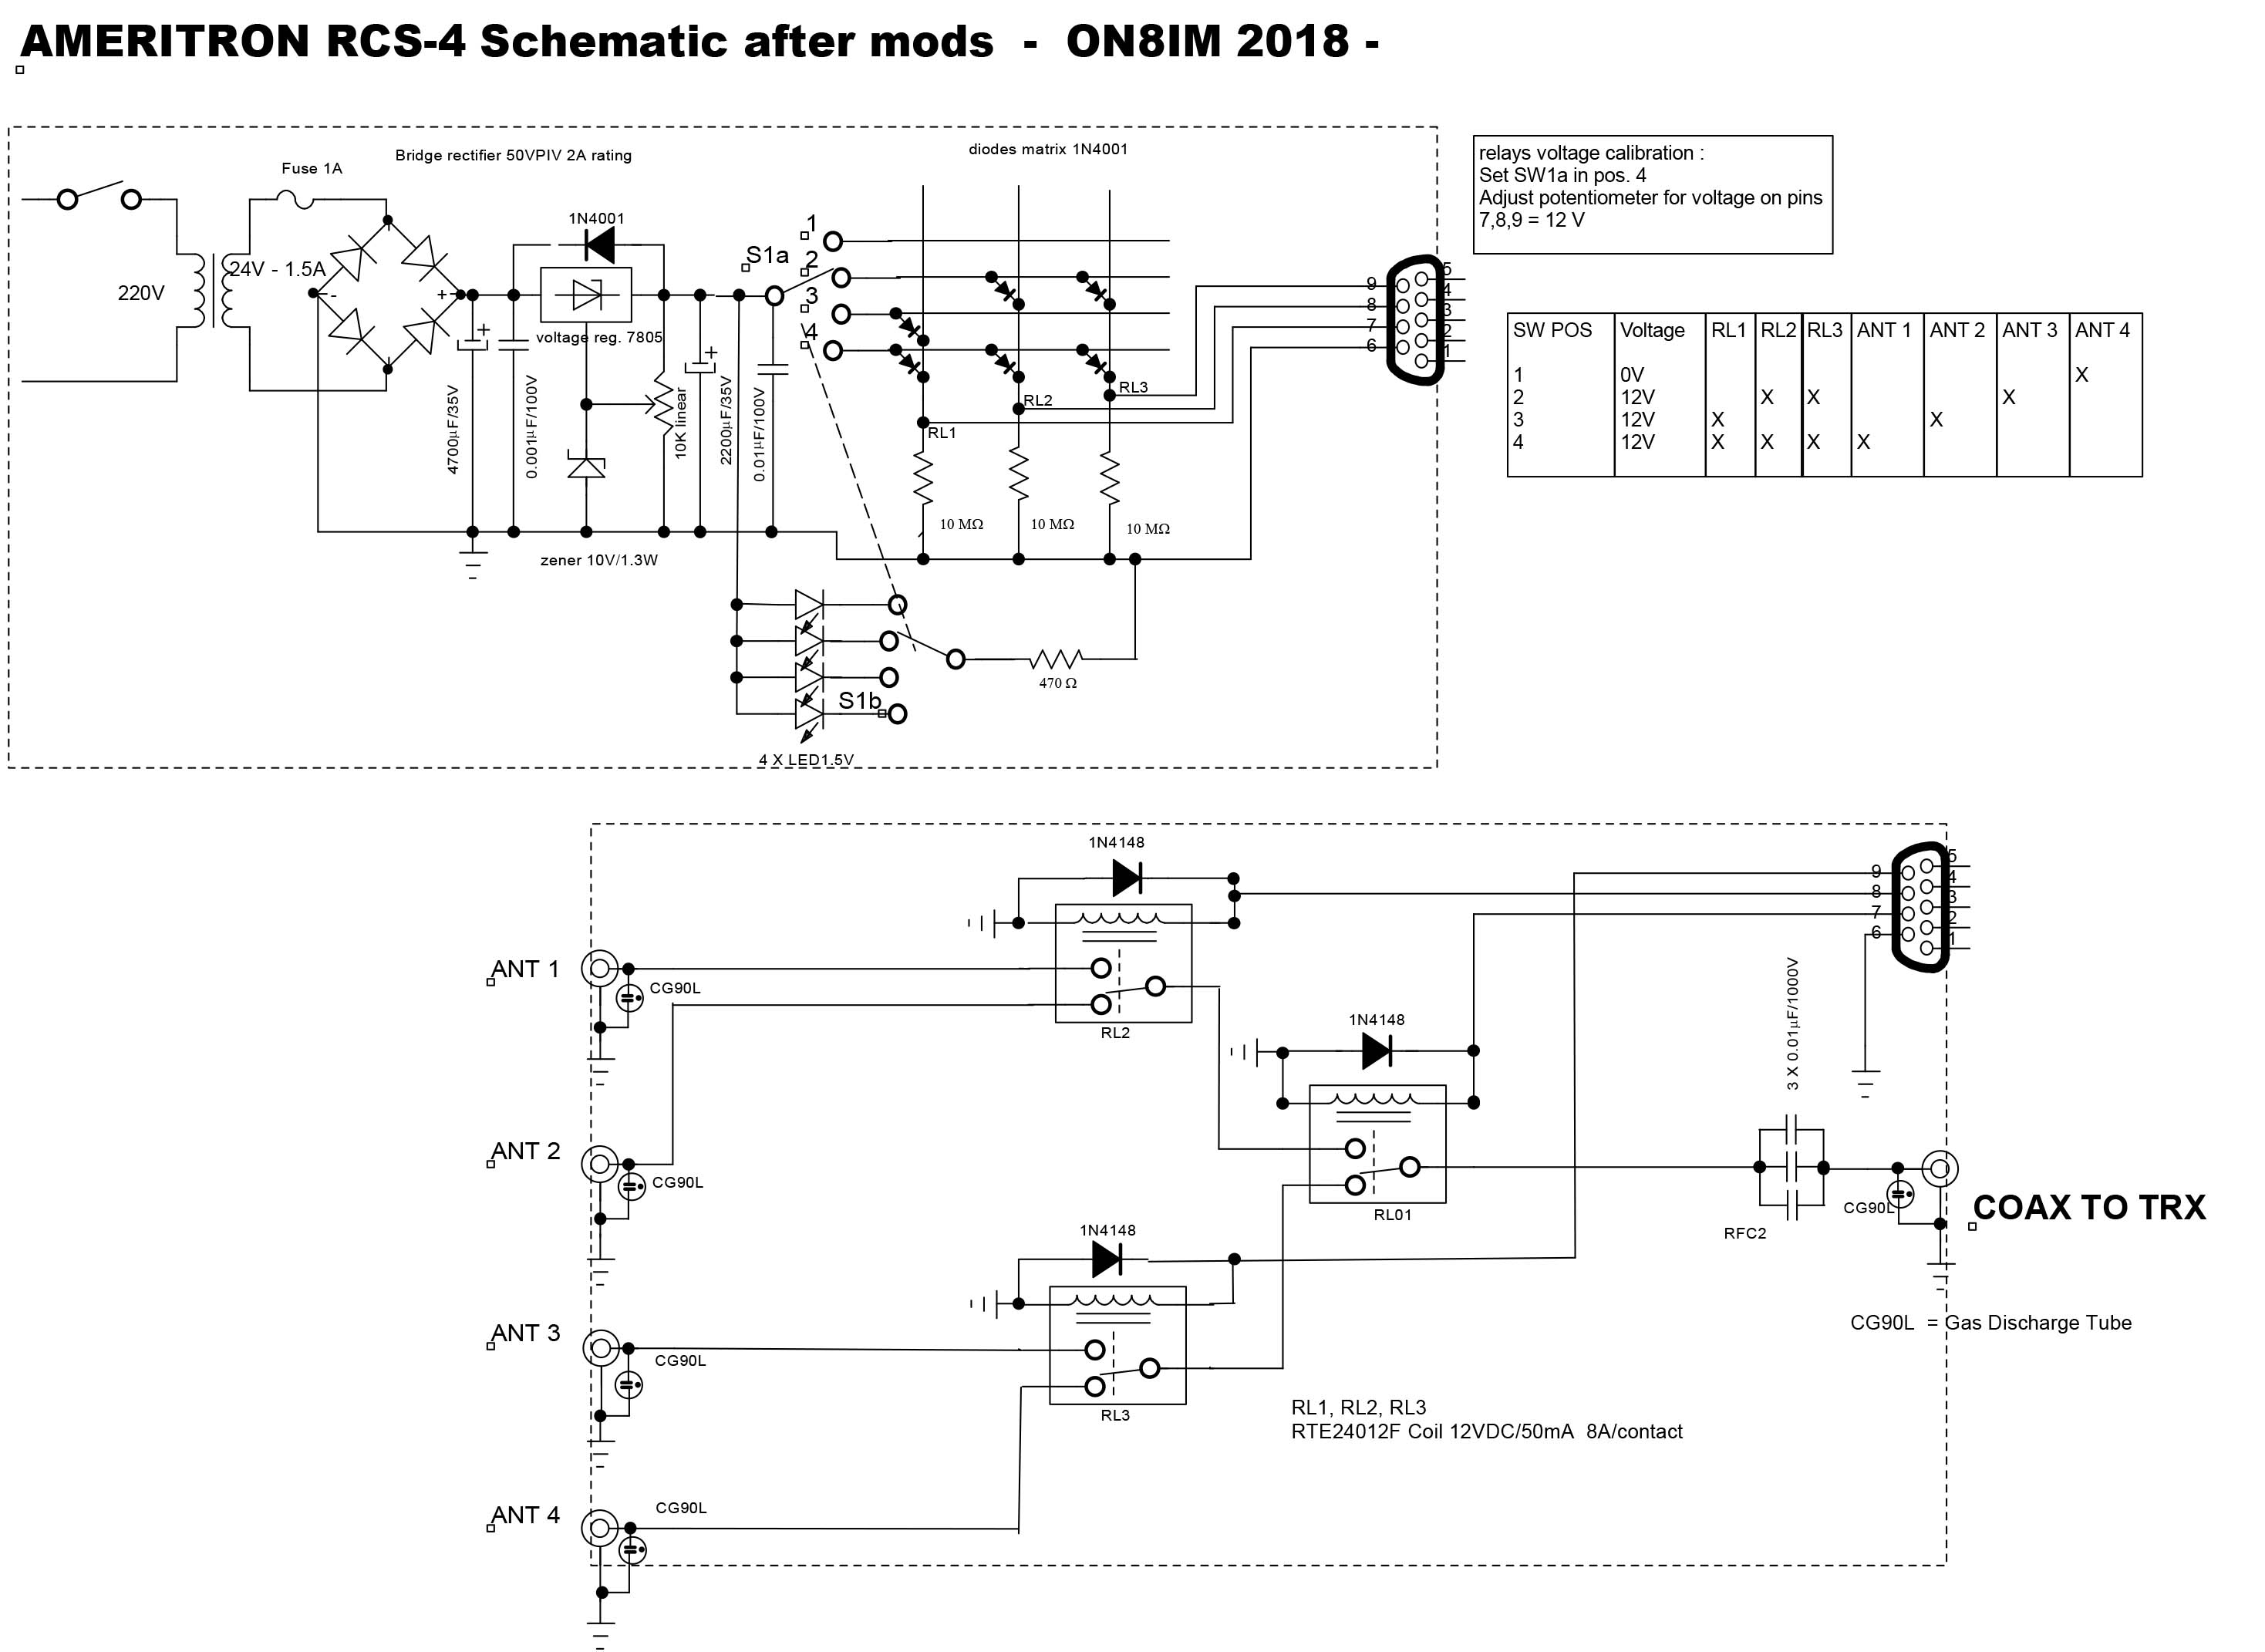 RCS4 mods schematics